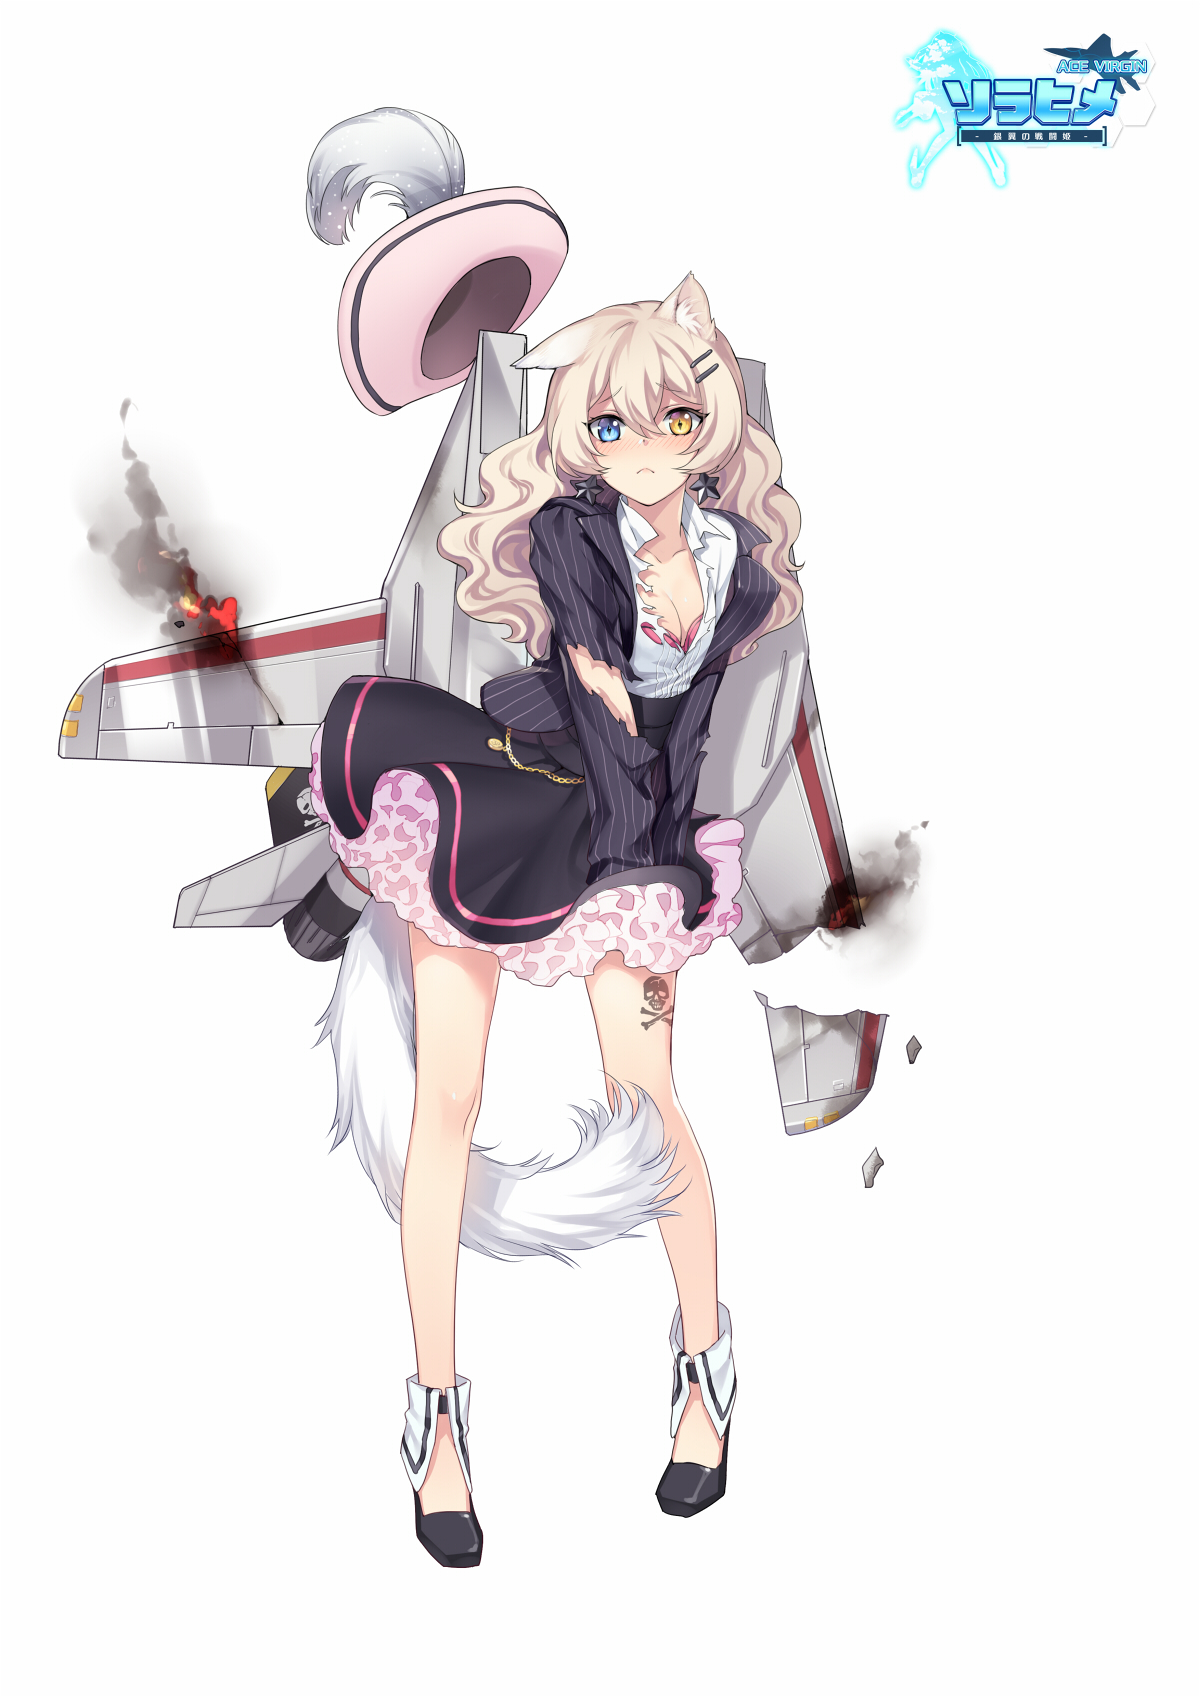 yande.re 410416 ace_virgin animal_ears bra cleavage fhalei heels heterochromia open_shirt tail tattoo torn_clothes.jpg